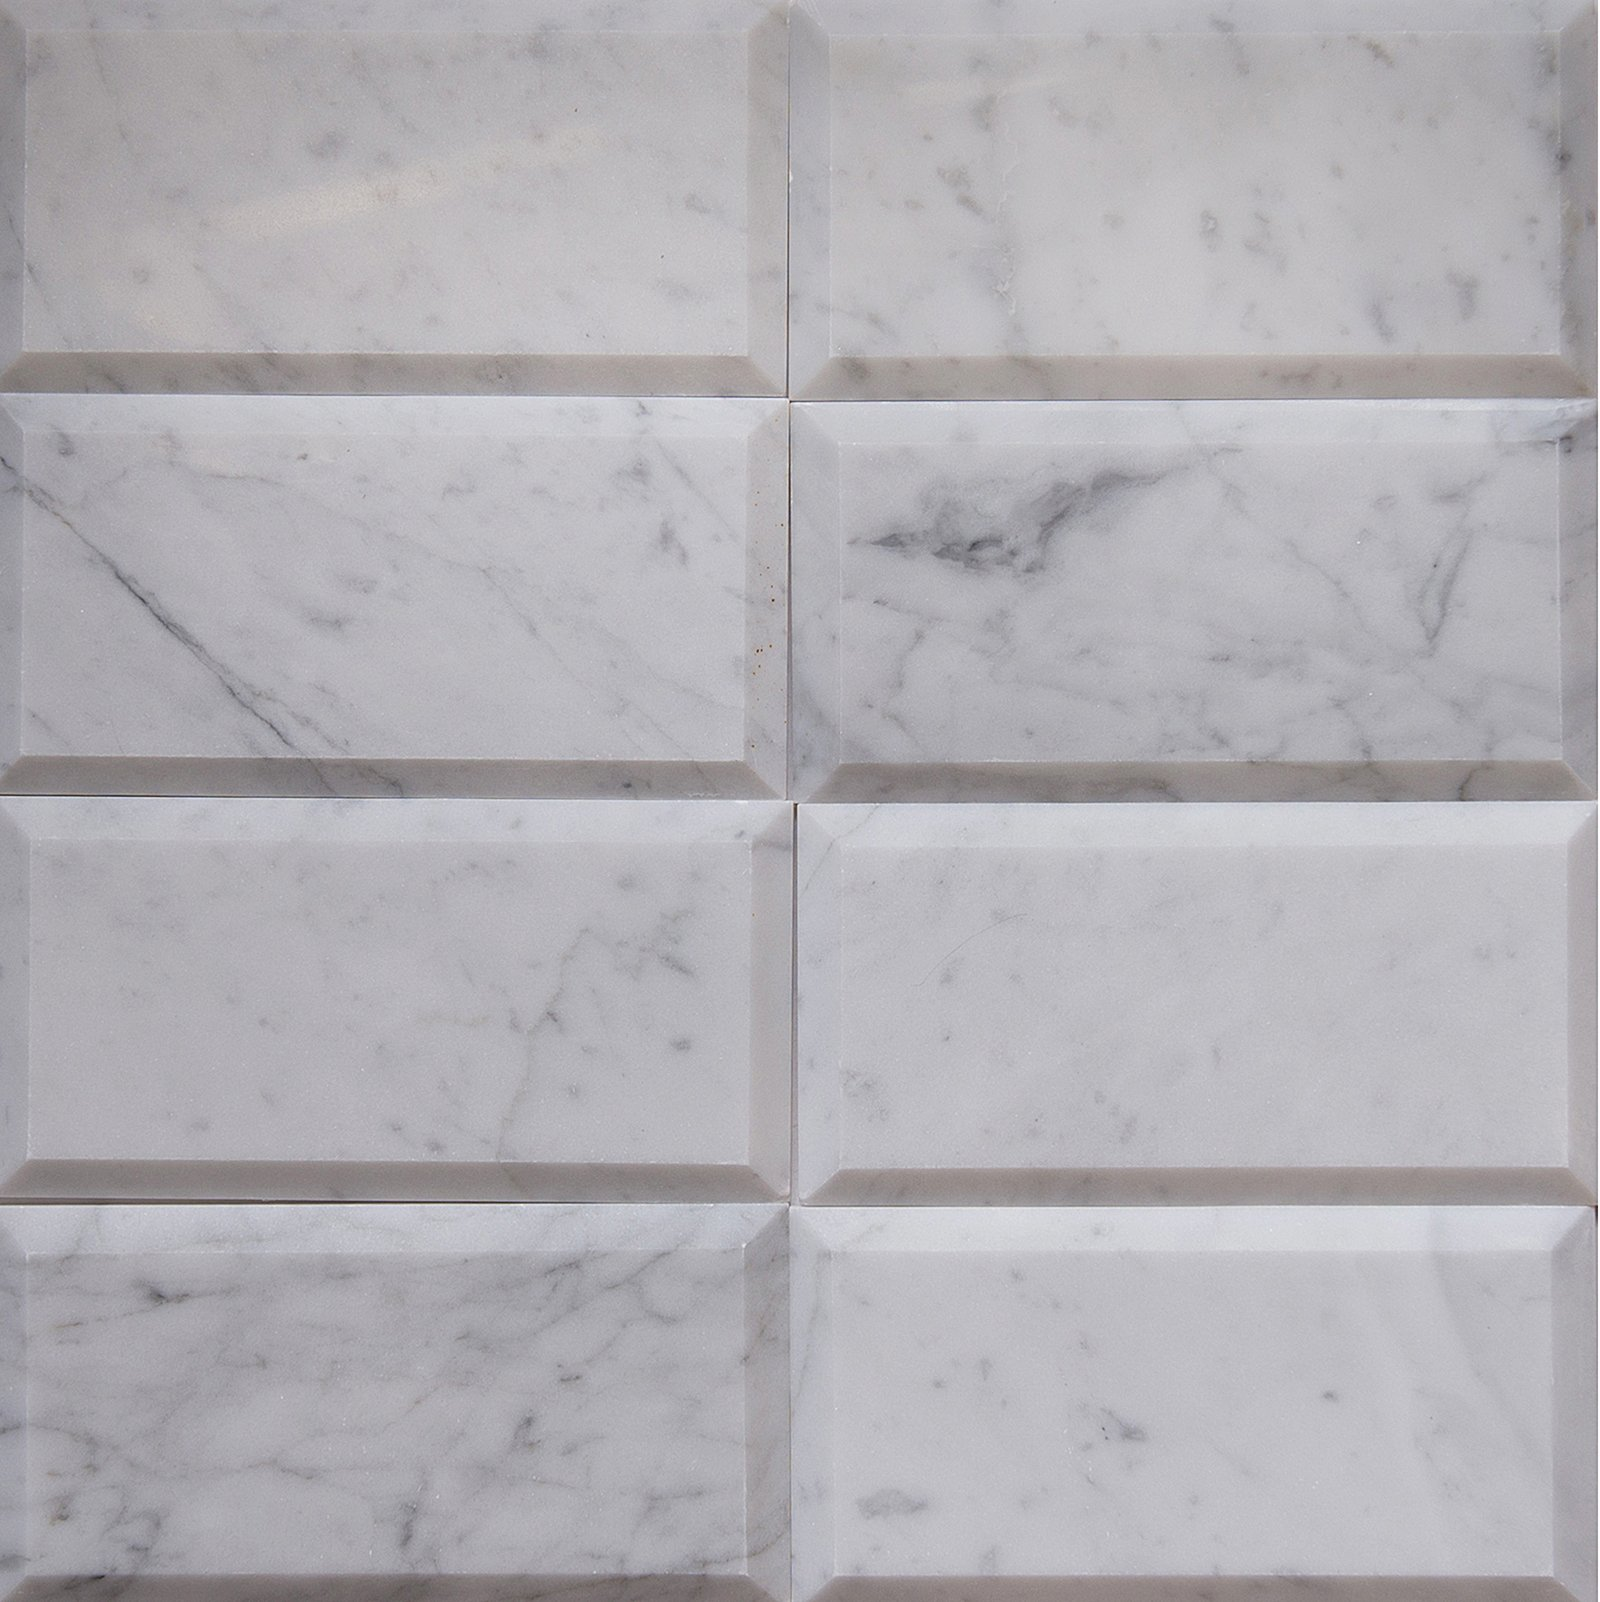 Carrara White Marble Field Tile, CWMT0306-B, 3''X6''X3/8'' Subway Tile, Polished and Deep Beveled (Box of 40 Pieces)